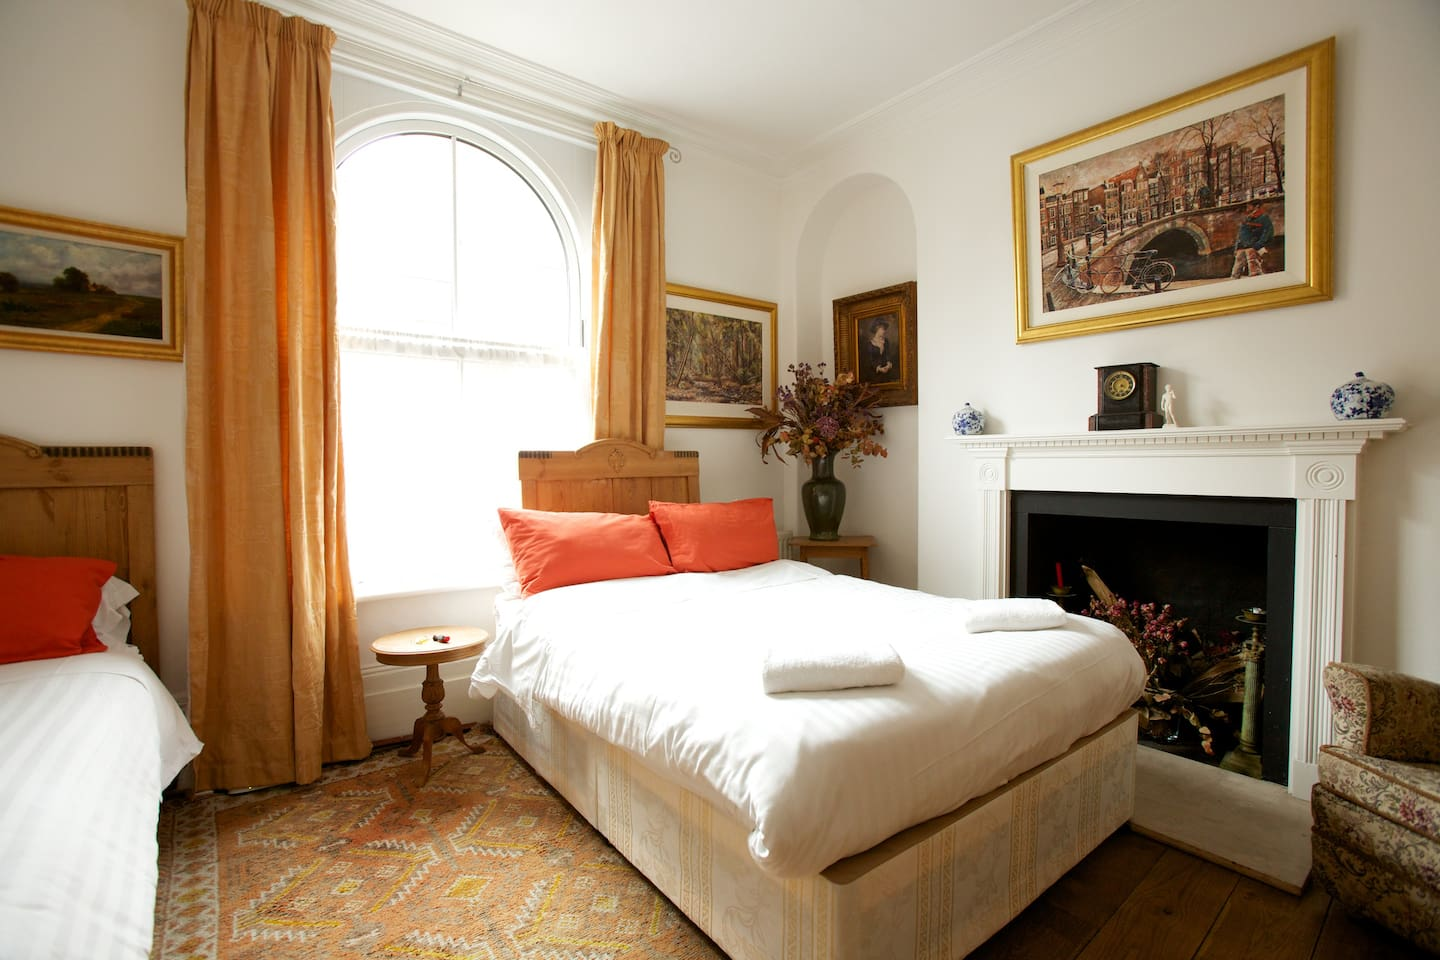 Central London, SE11 beautiful room